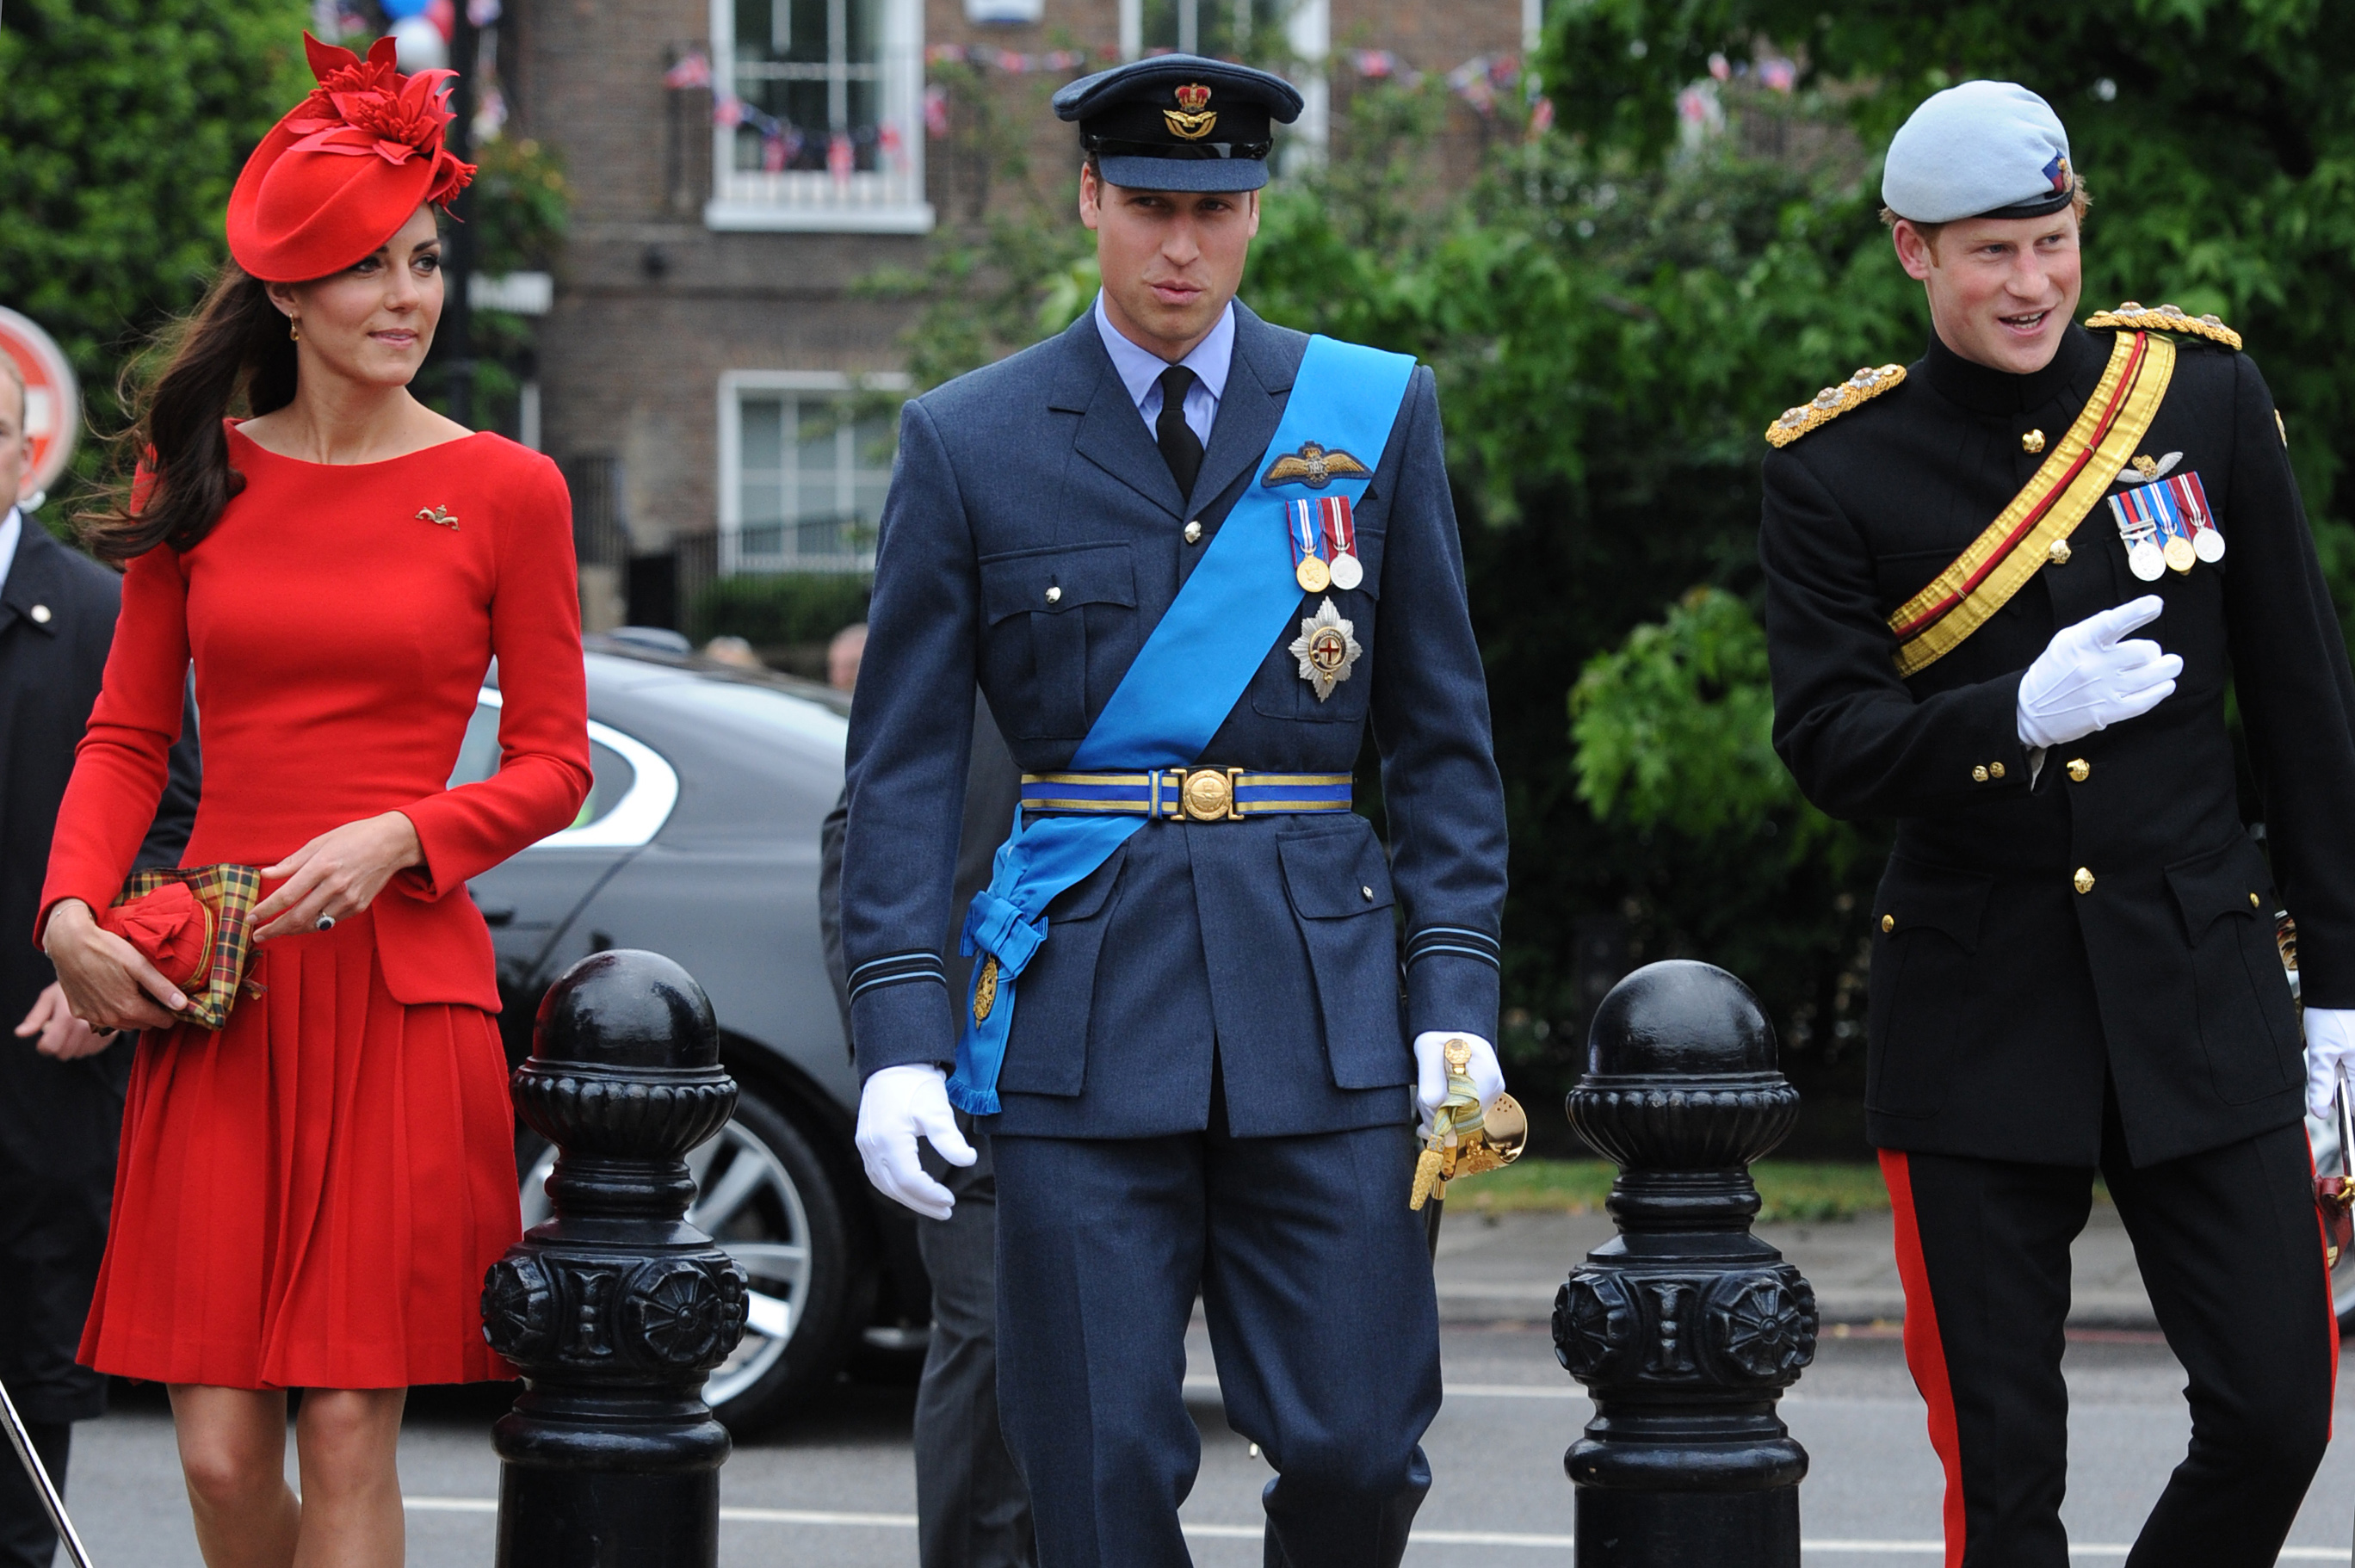 The queen's grandson Prince William and his wife, the Duchess of Cambridge -- he in his Royal Air Force uniform, she in a red Alexander McQueen dress -- and William's brother, Prince Harry, were among senior royals who joined the queen and her husband, Prince Philip.